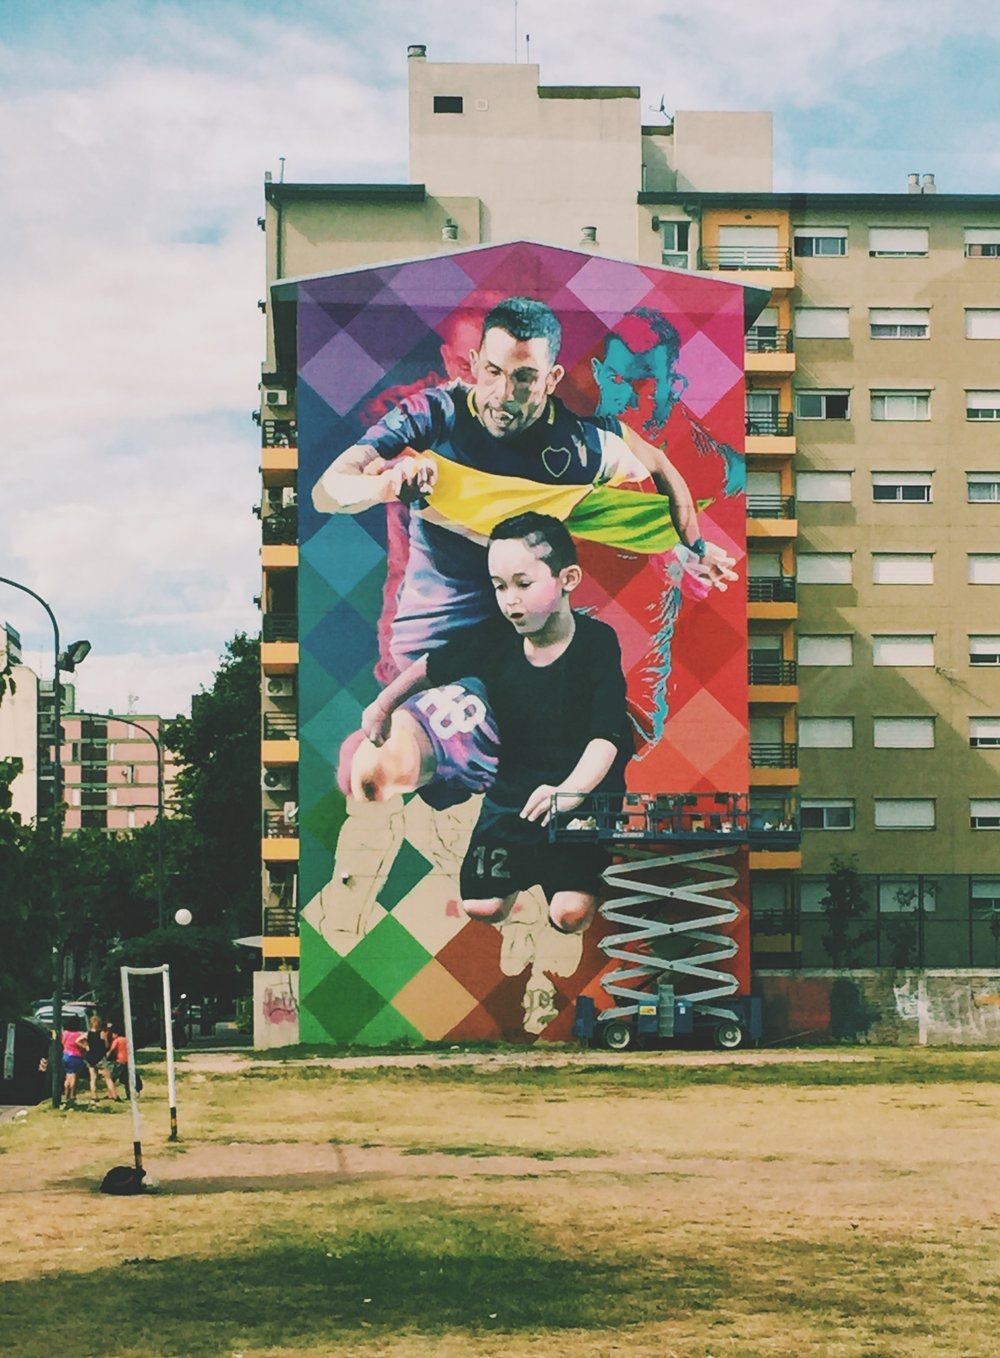 Buenos Aires, Argentina - Mural of Carlos Tevez doesn't lack any color looking down on a local field.